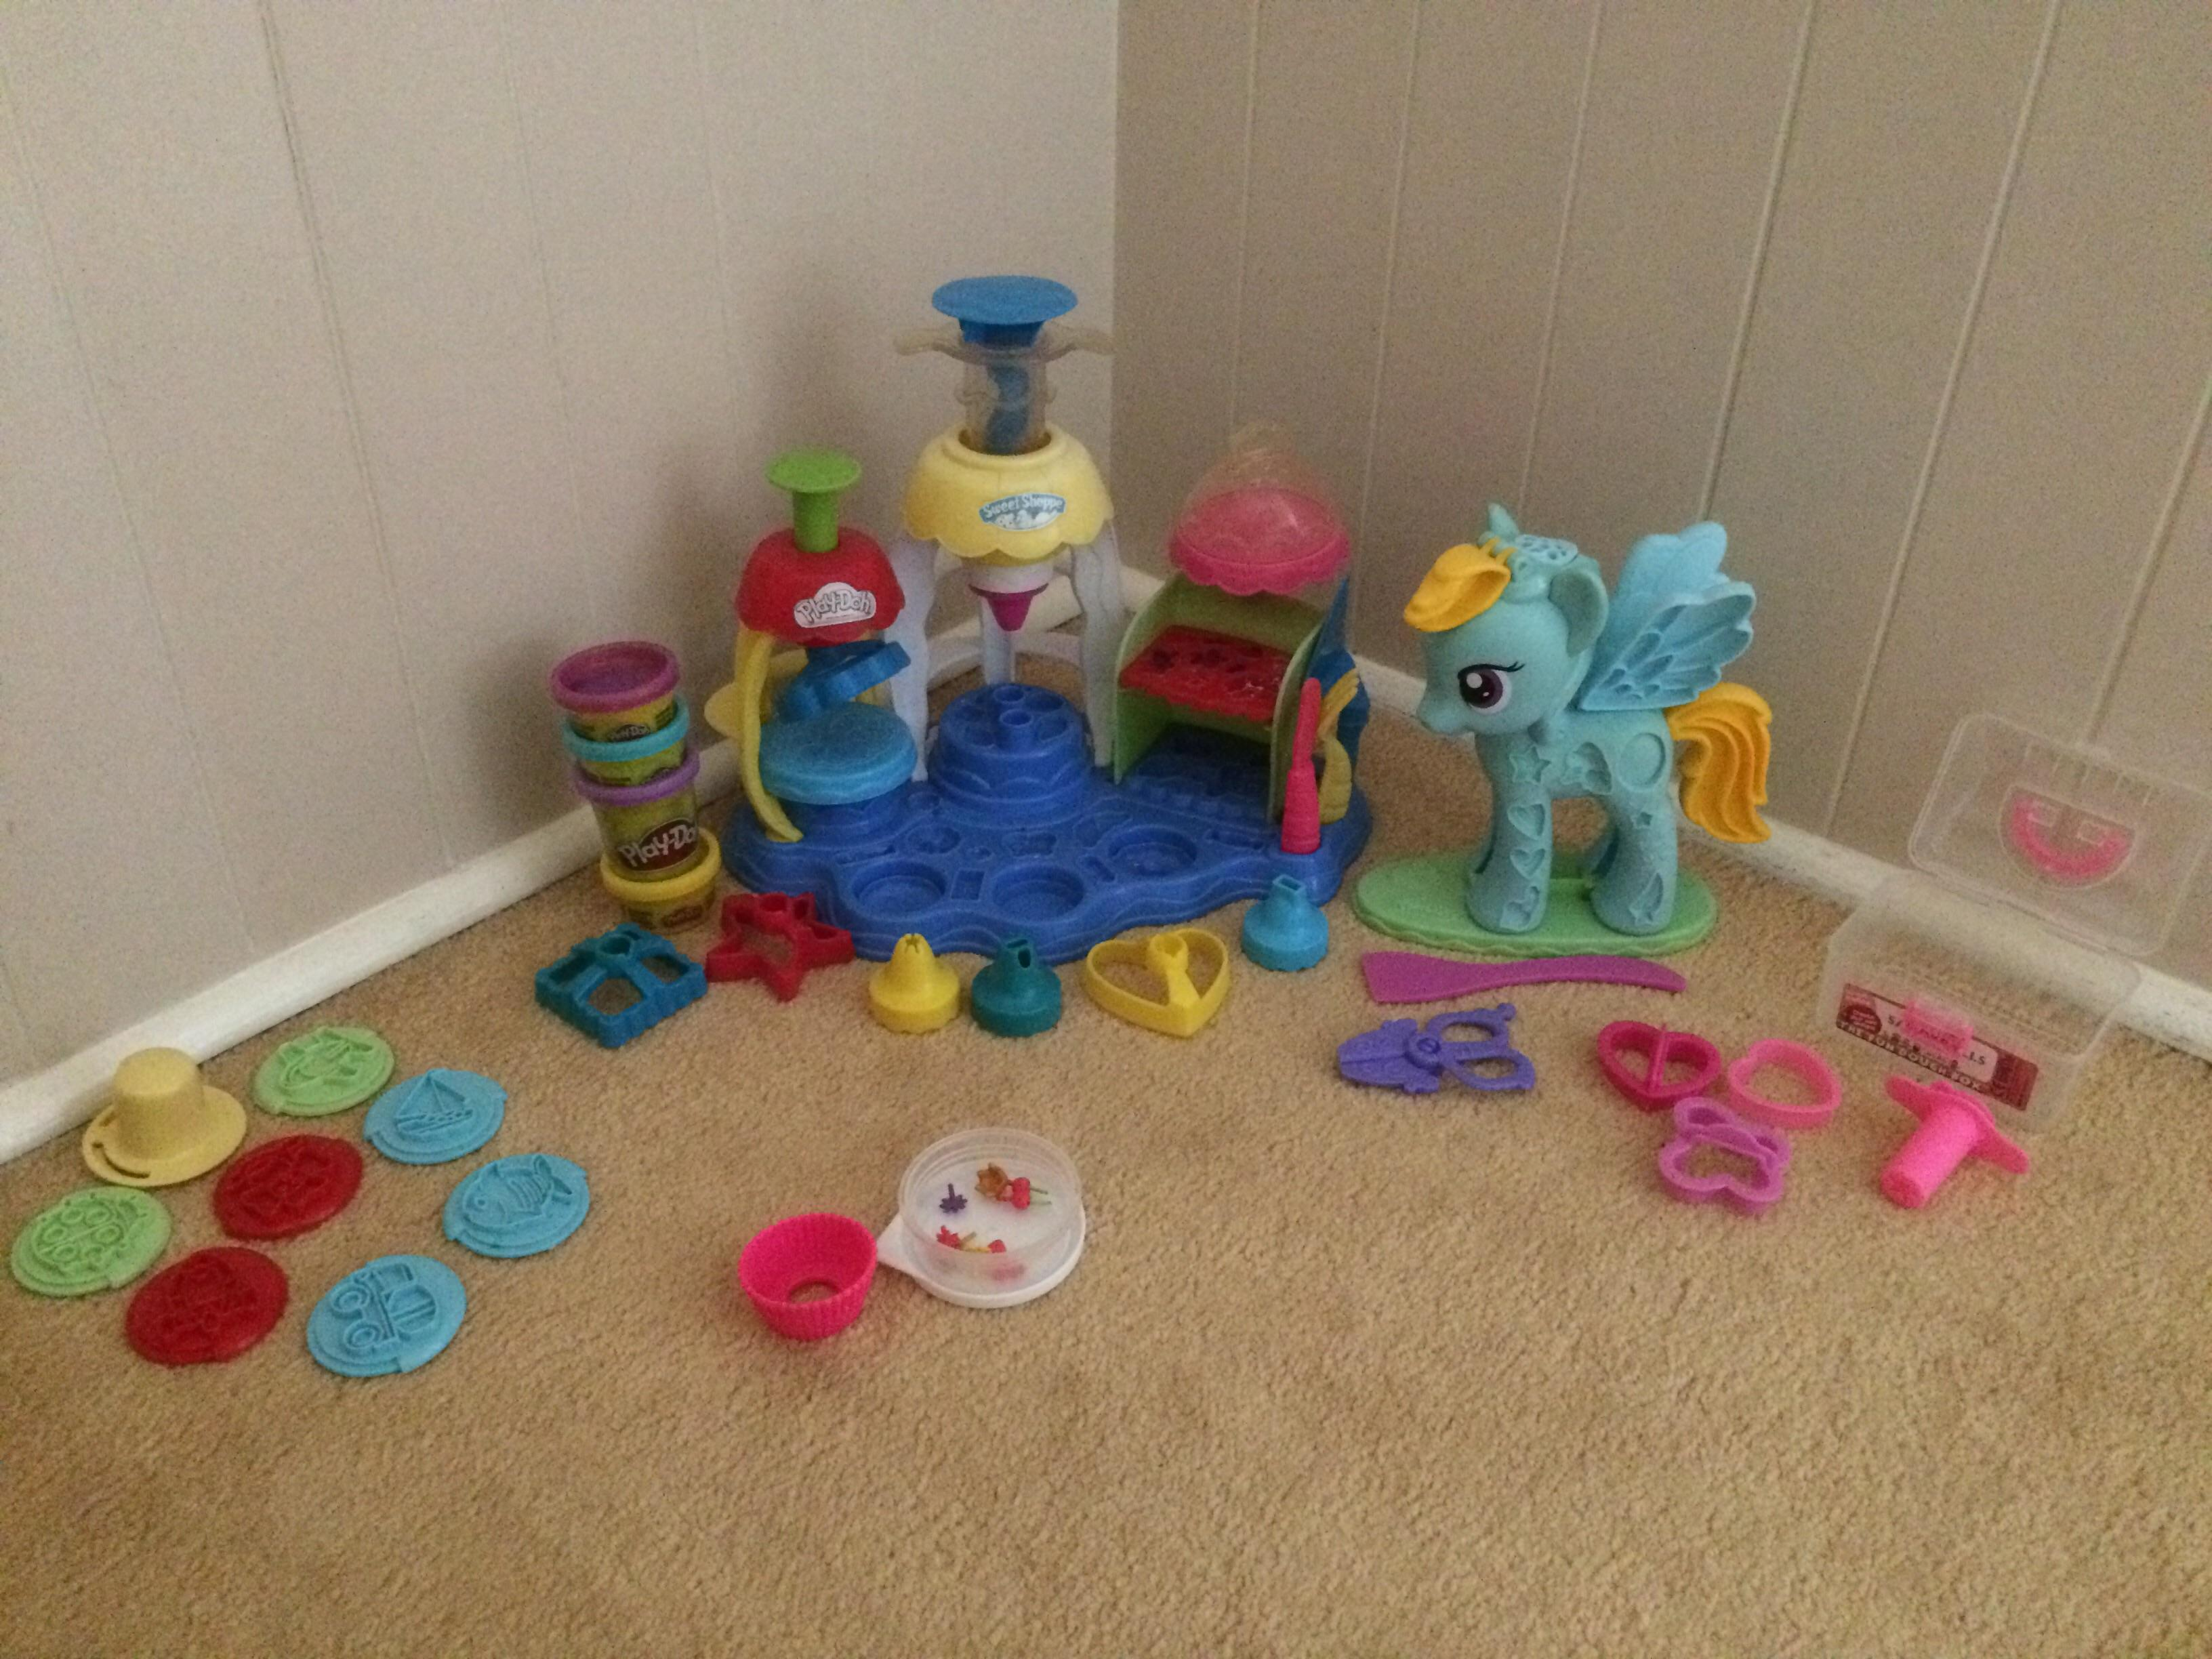 PlayDoh Sweet Shoppe, My Little Pony Rainbow Dash and other